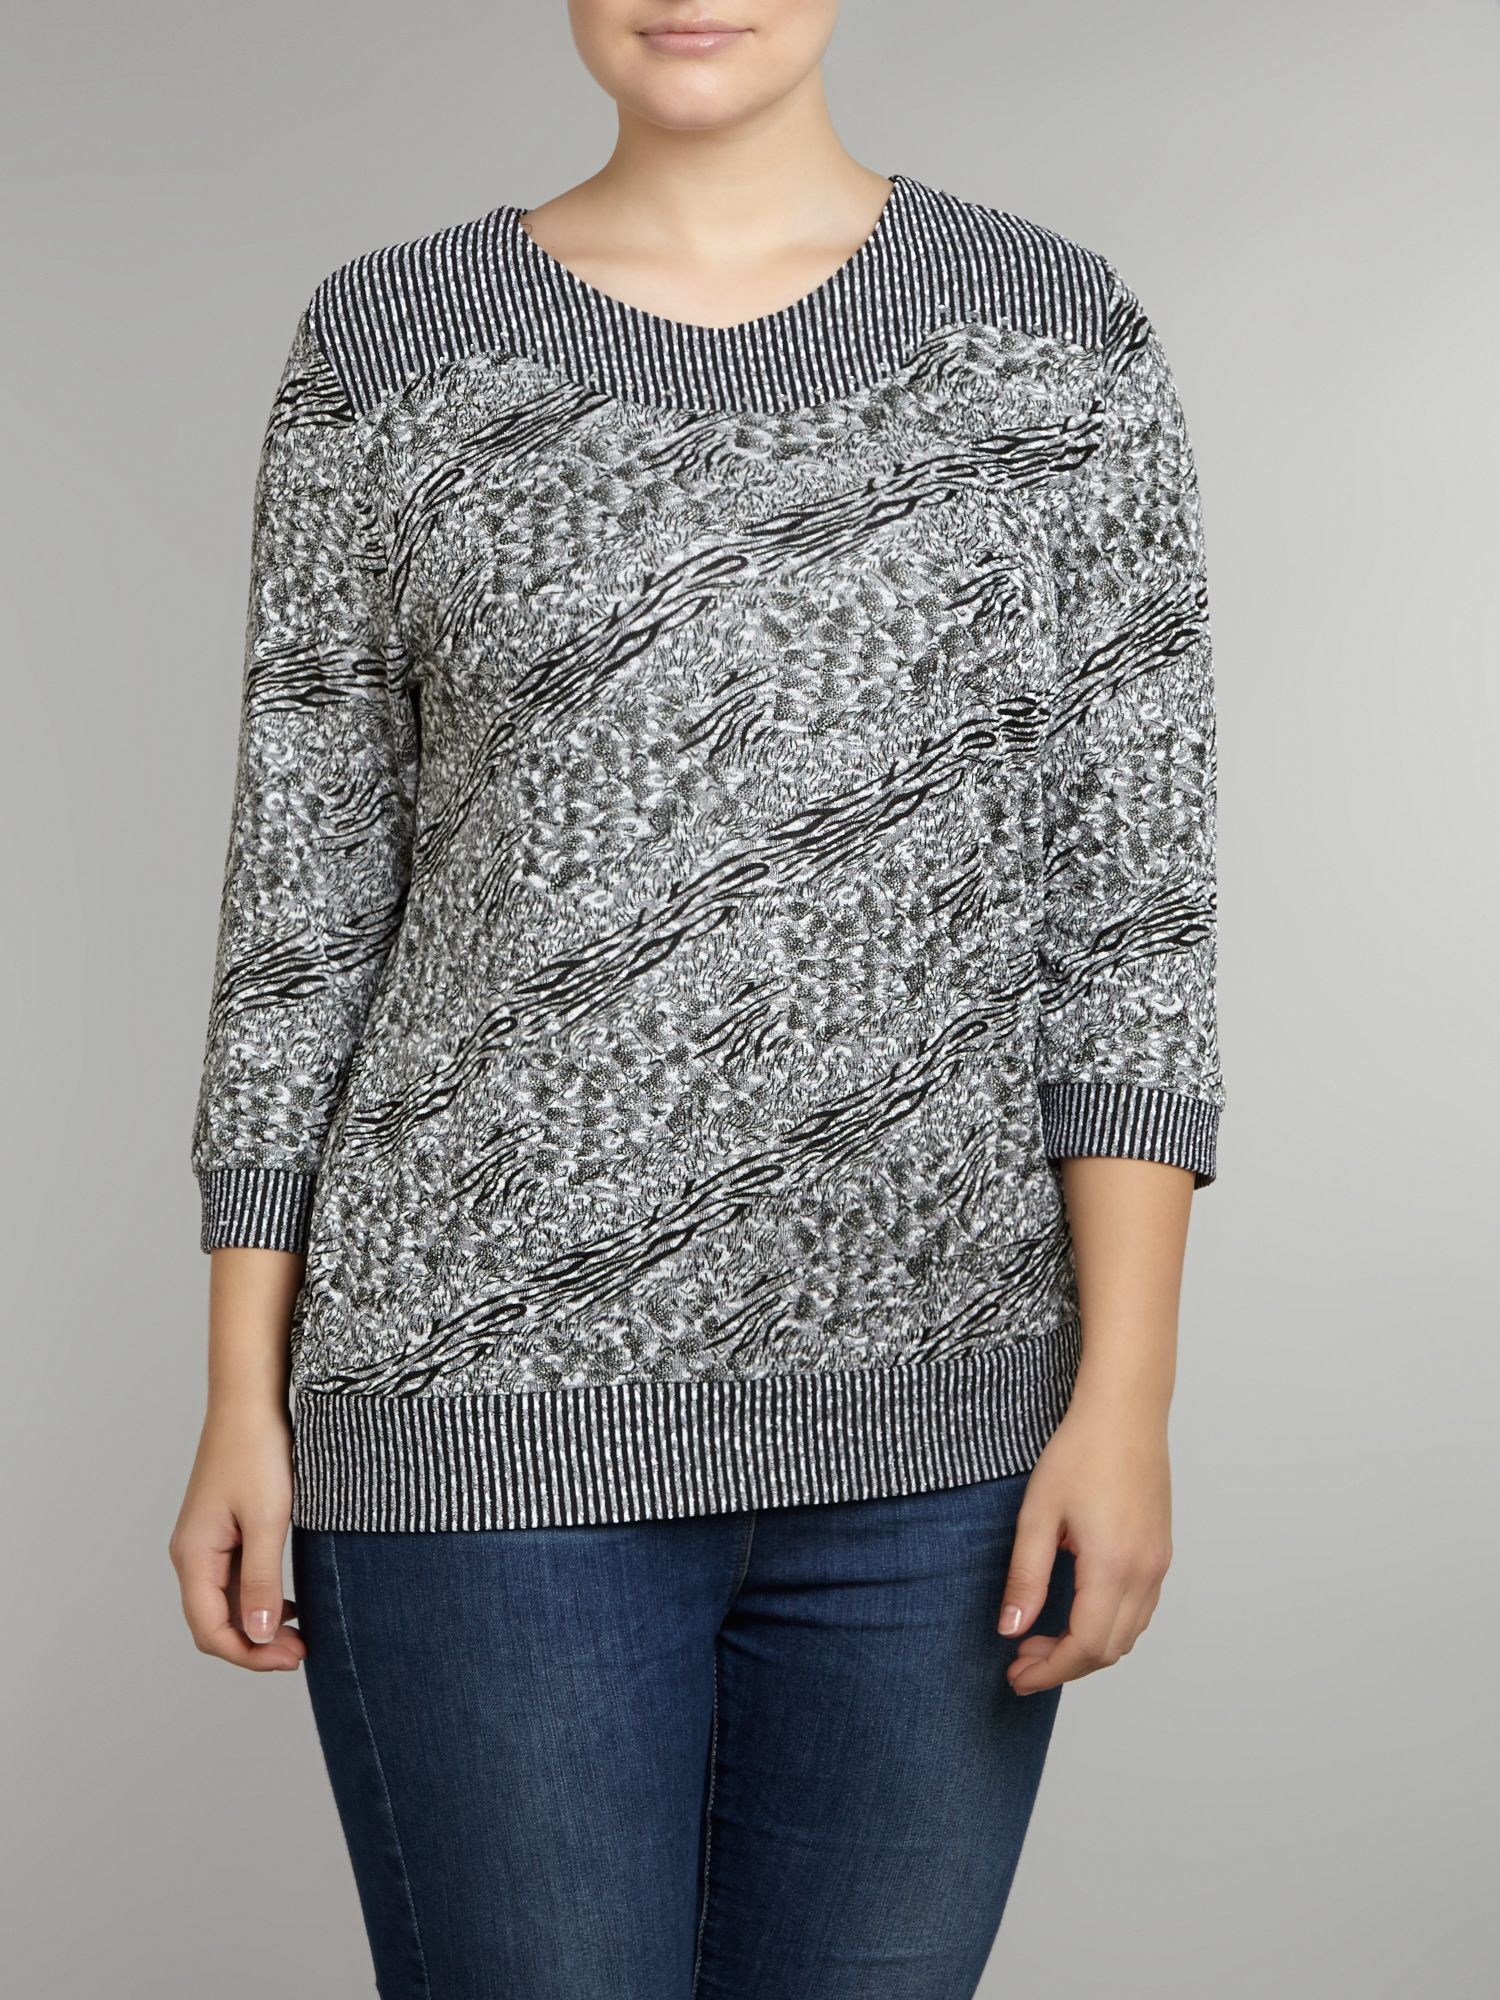 Textured diamante top